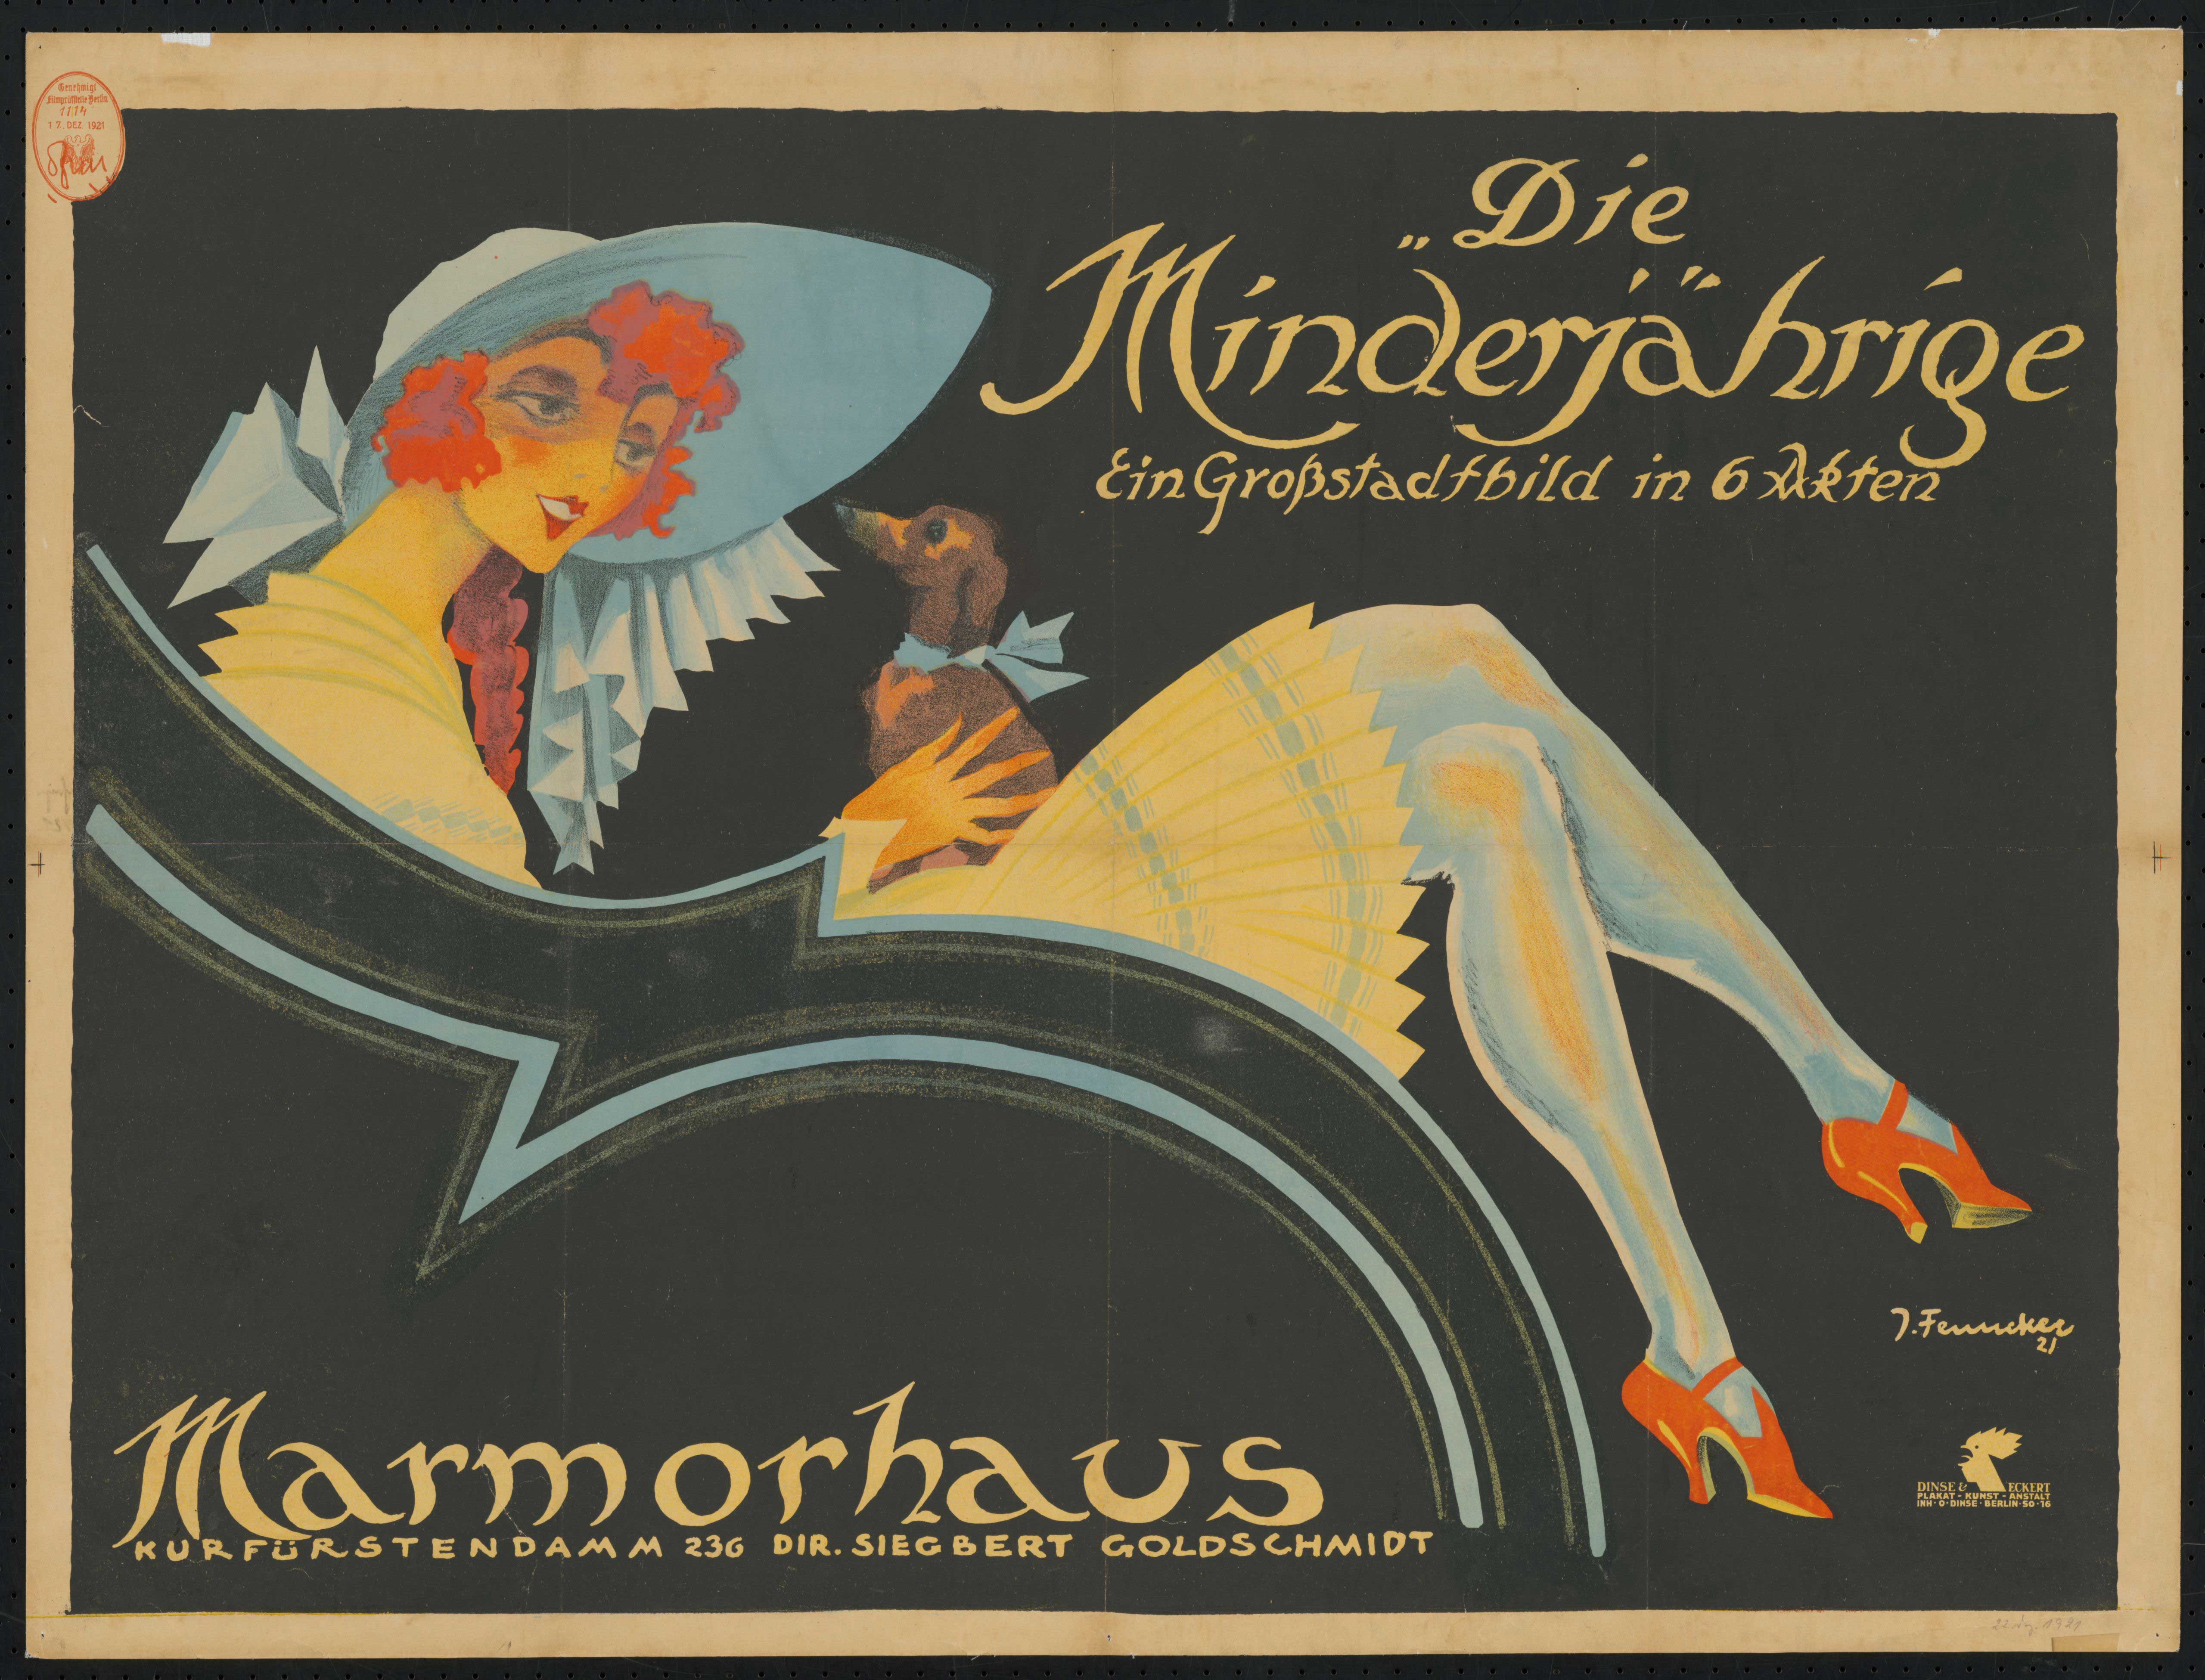 Film poster by Josef Fenneker: Die Minderjährige, Germany 1921, directed by Alfred Tostary